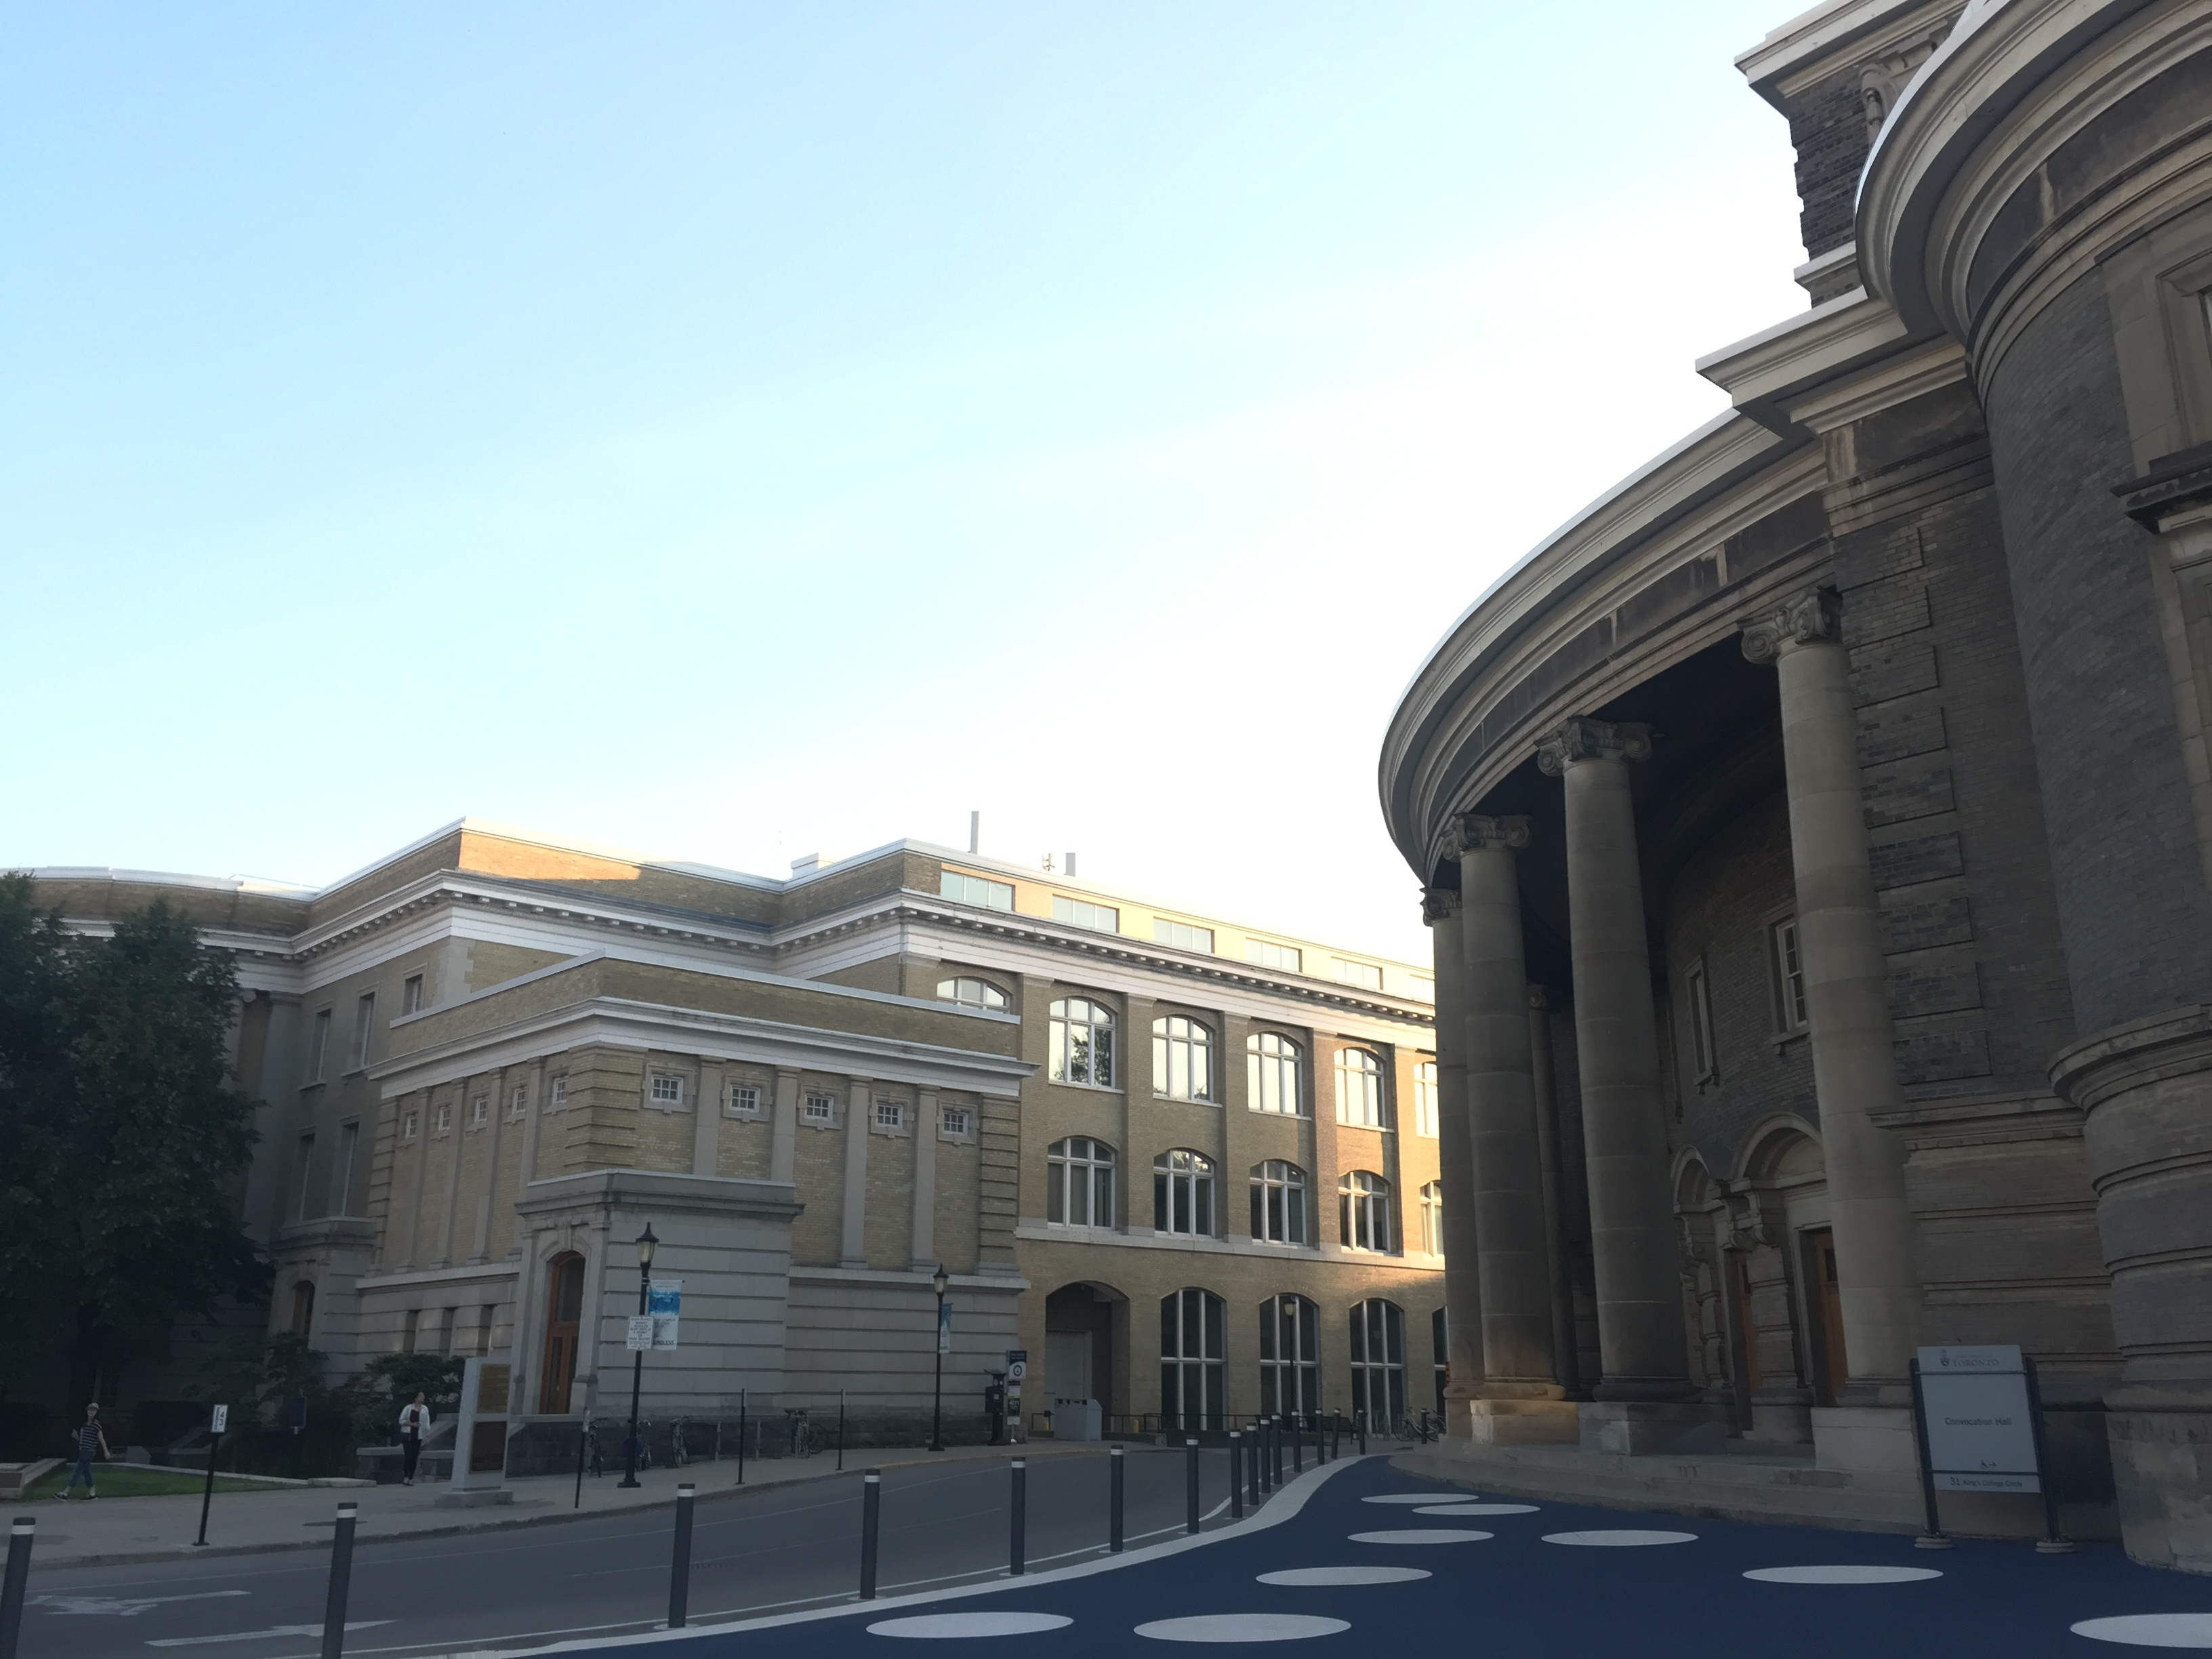 a photo of the pillars of convocation hall and the sanford fleming building beside the convocation hall with the road in between and blue skies above